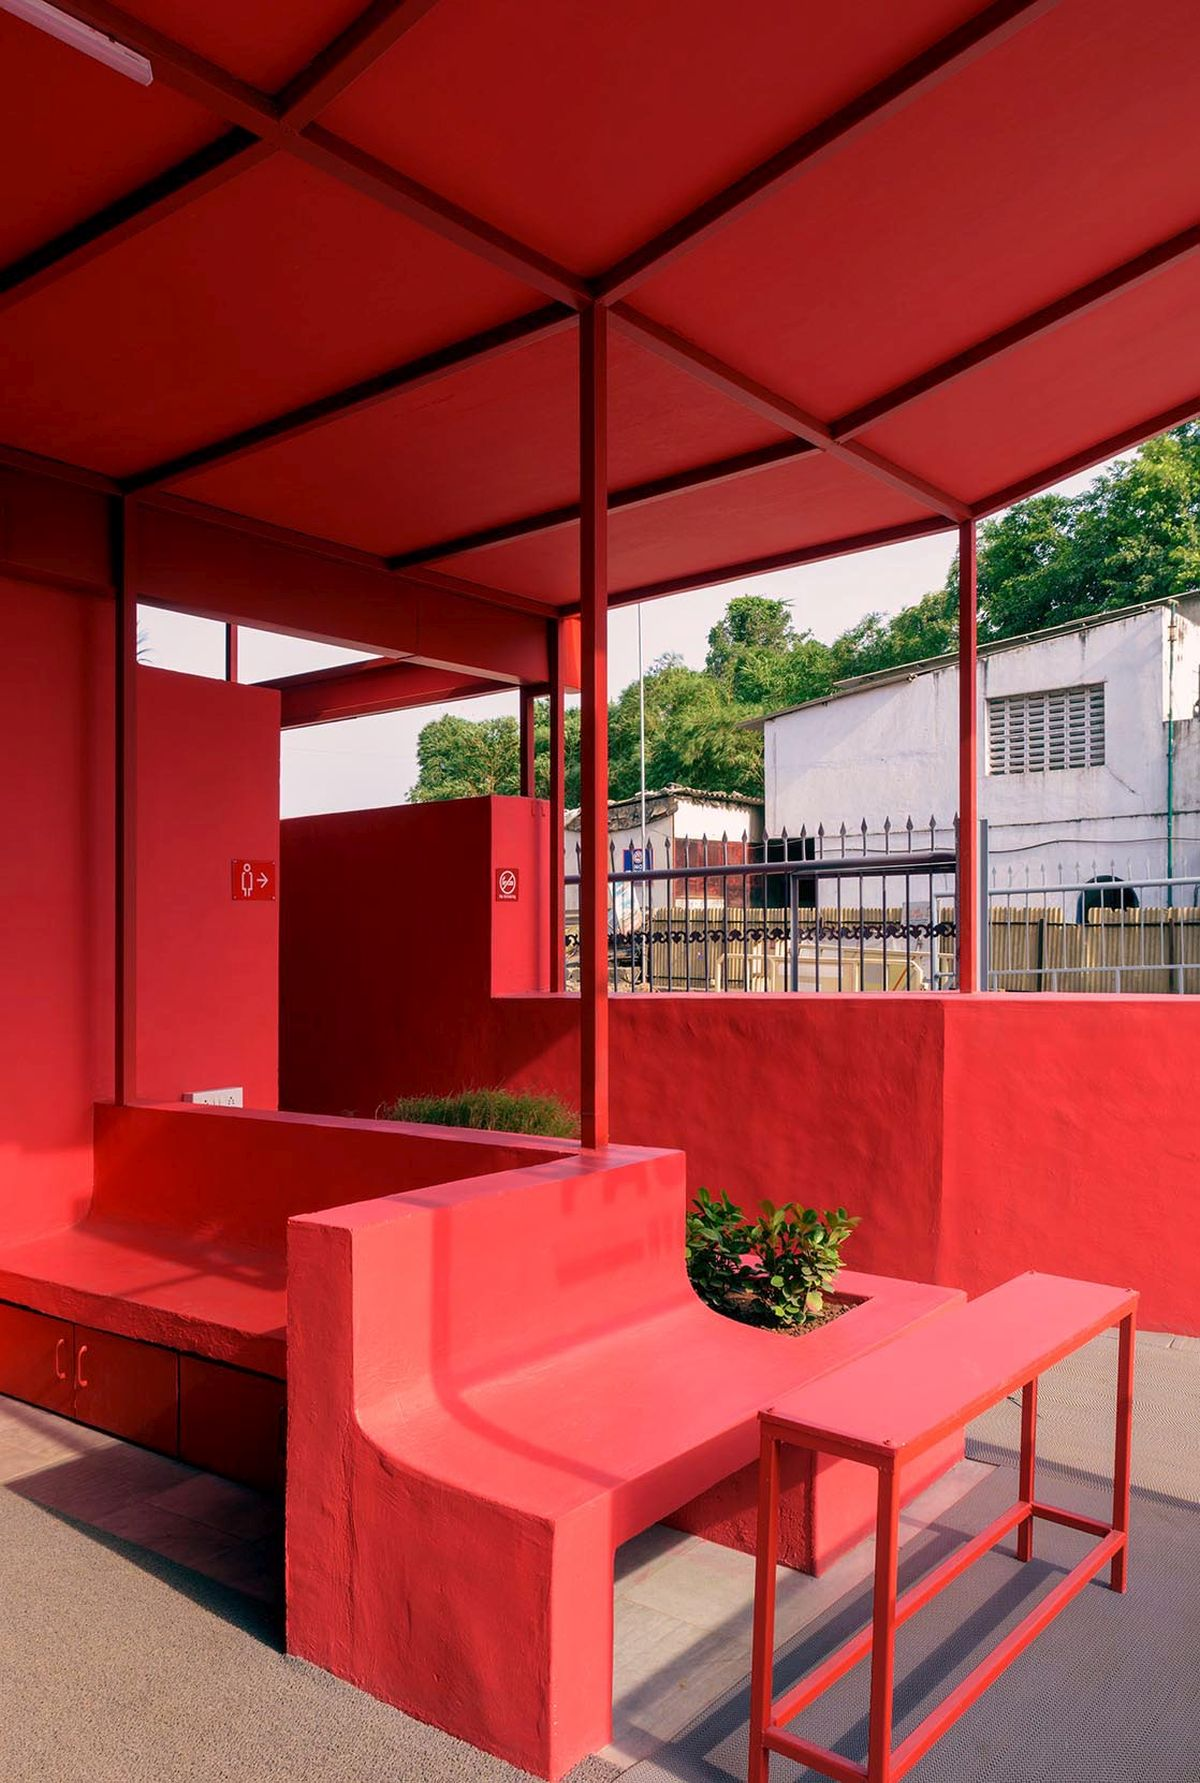 Pause - Restrooms, at Bombay-Goa Highway, by RC Architects 9